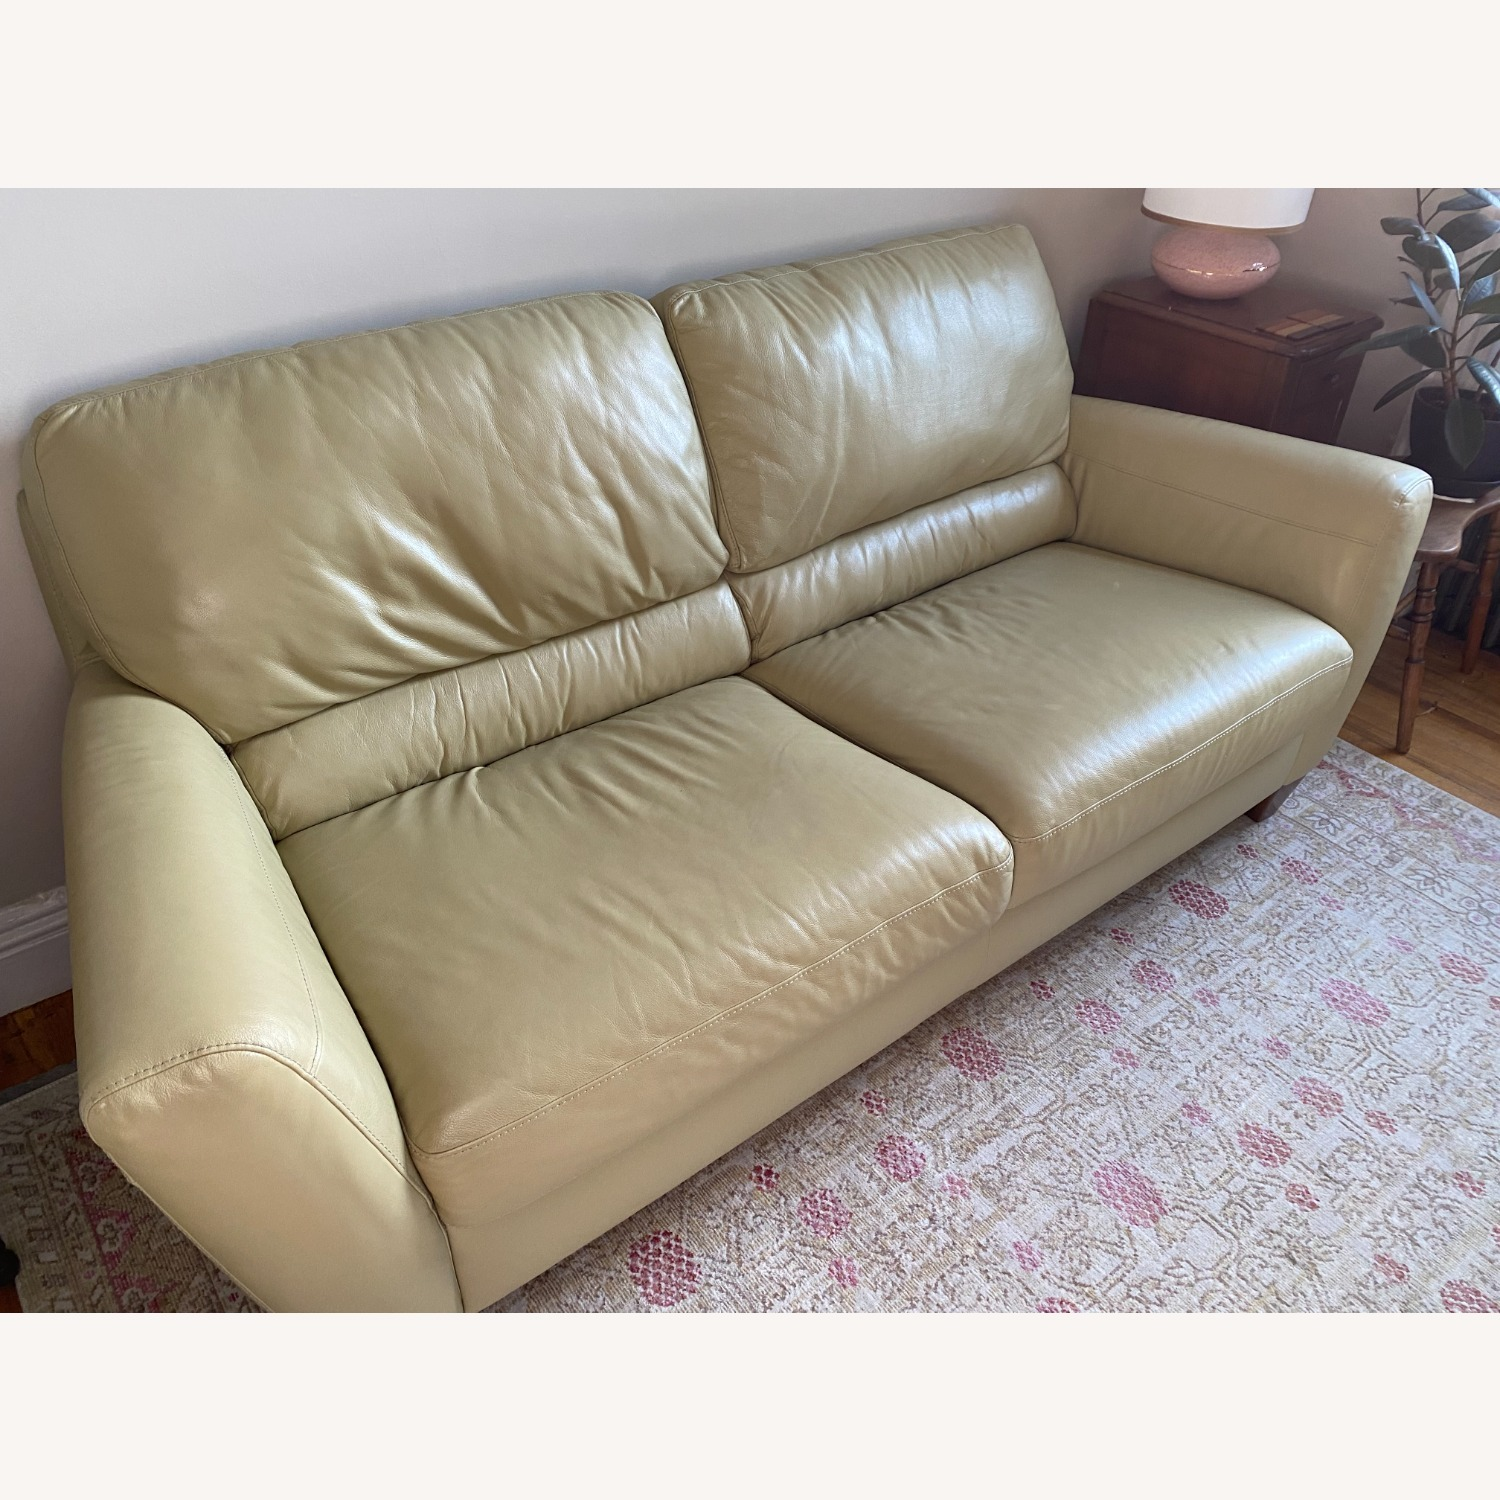 Macy's light Green Leather Couch - image-4